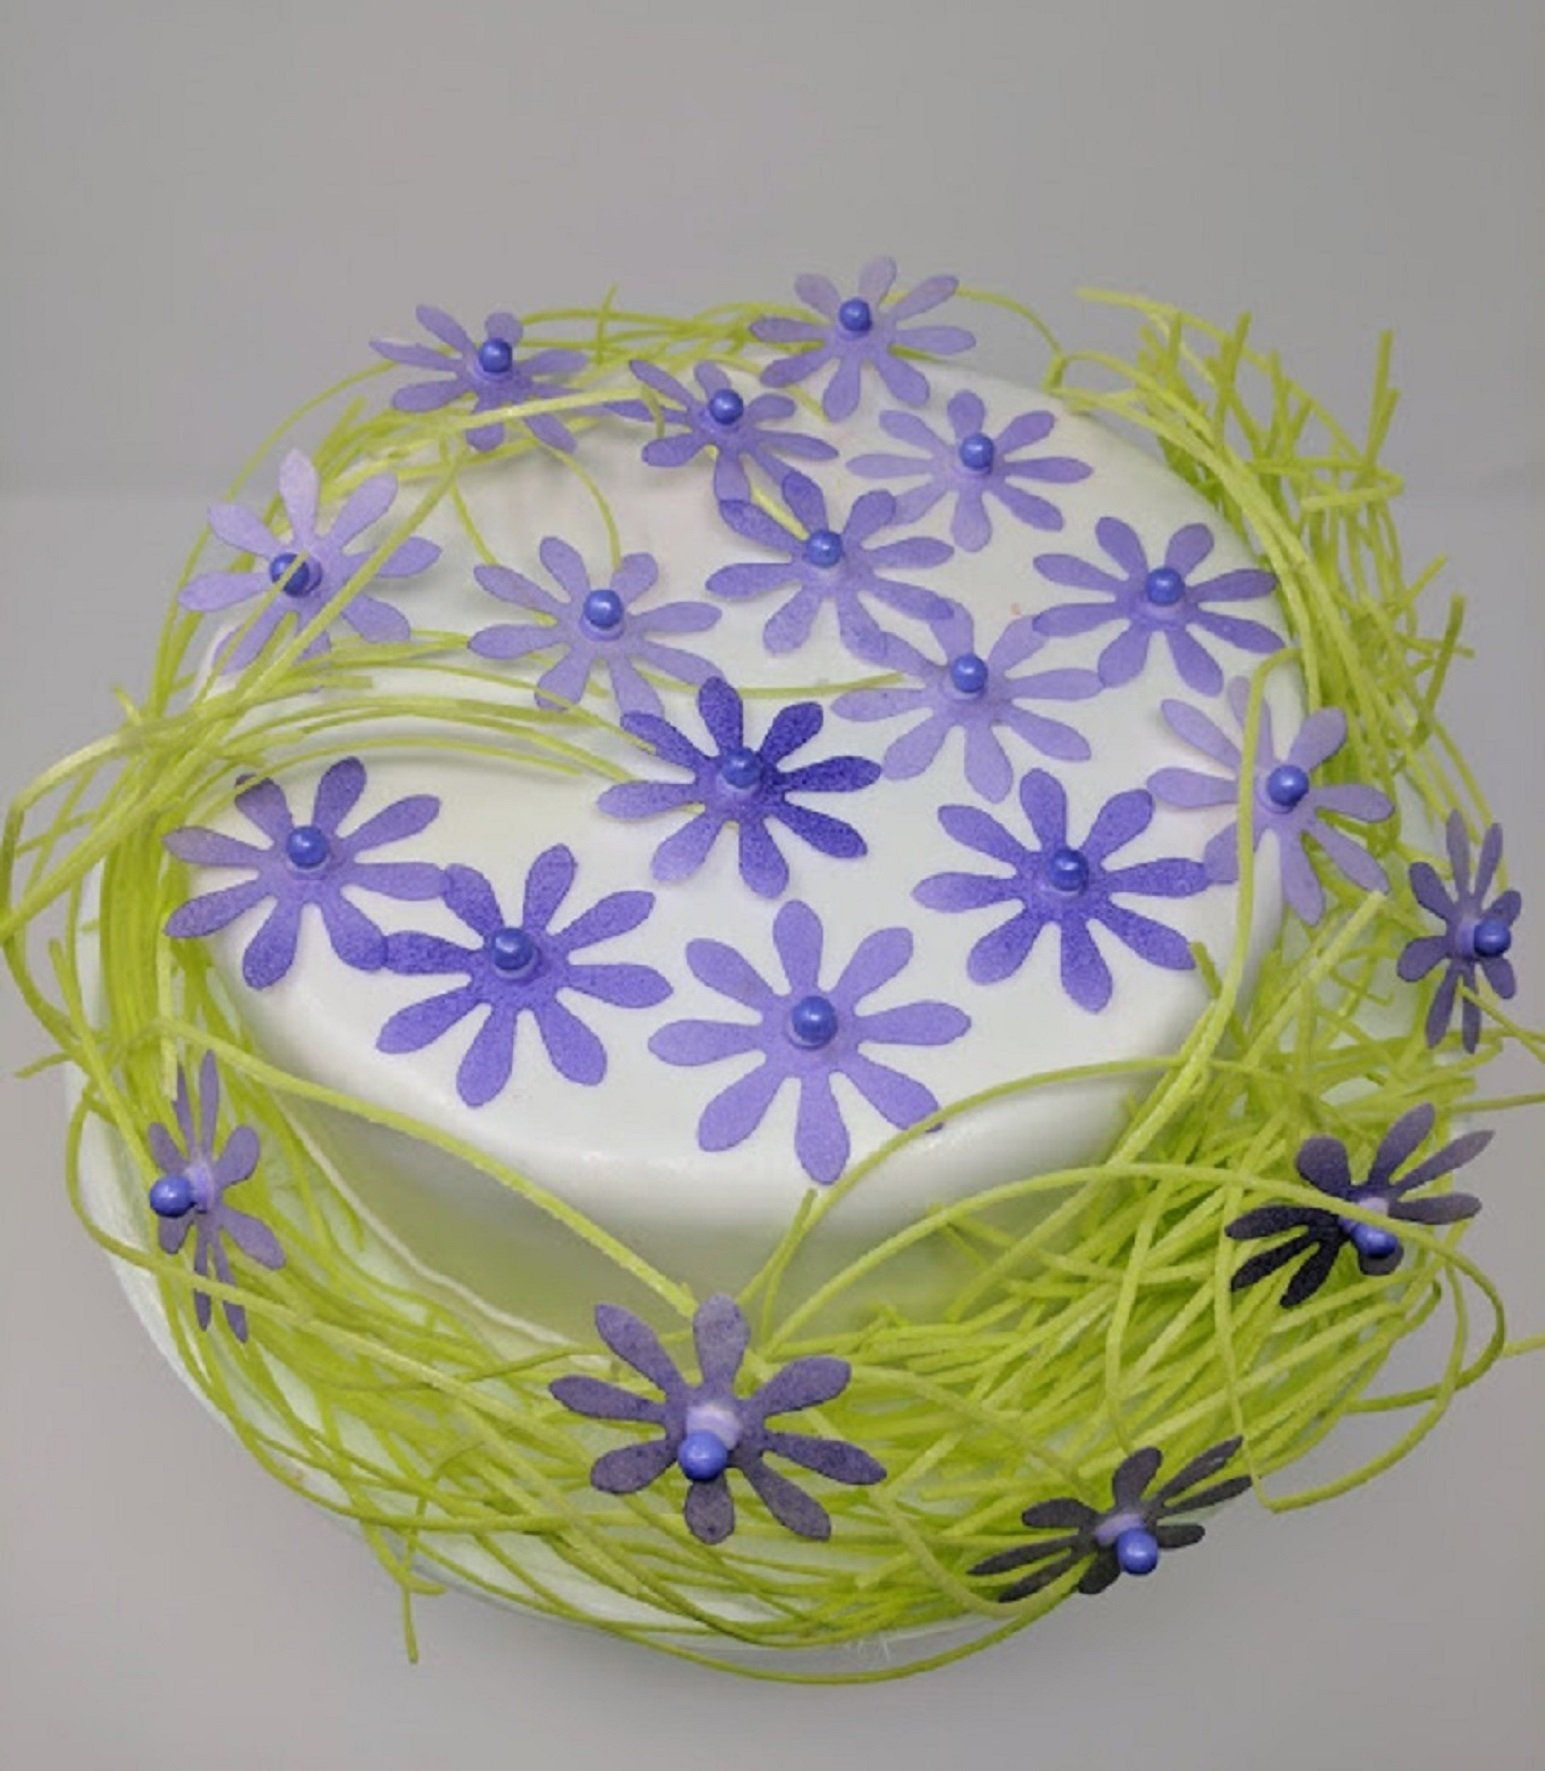 Edible rice paper daisy flowers for cake decoration 20